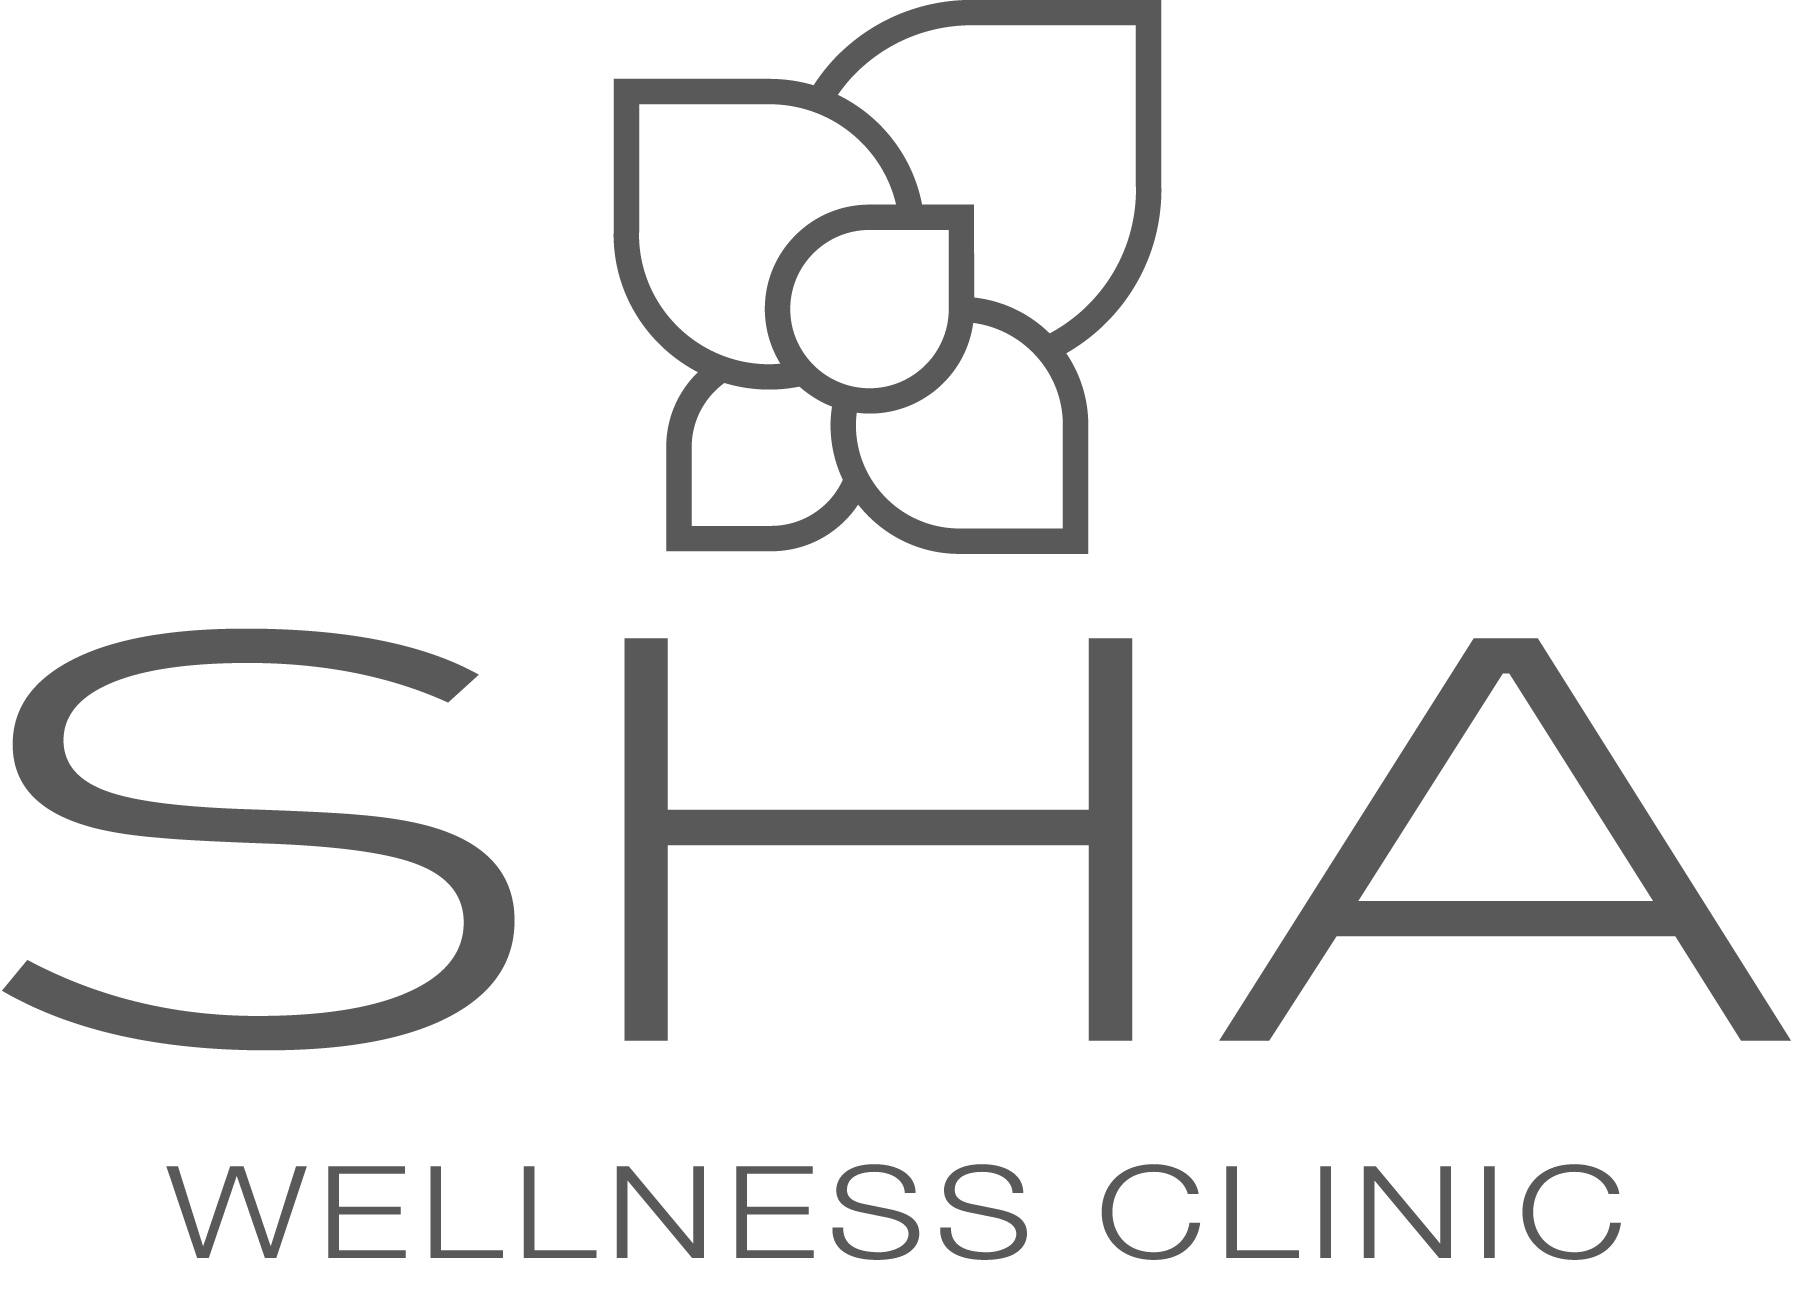 SHA Wellness Clinic, Эль Альбир